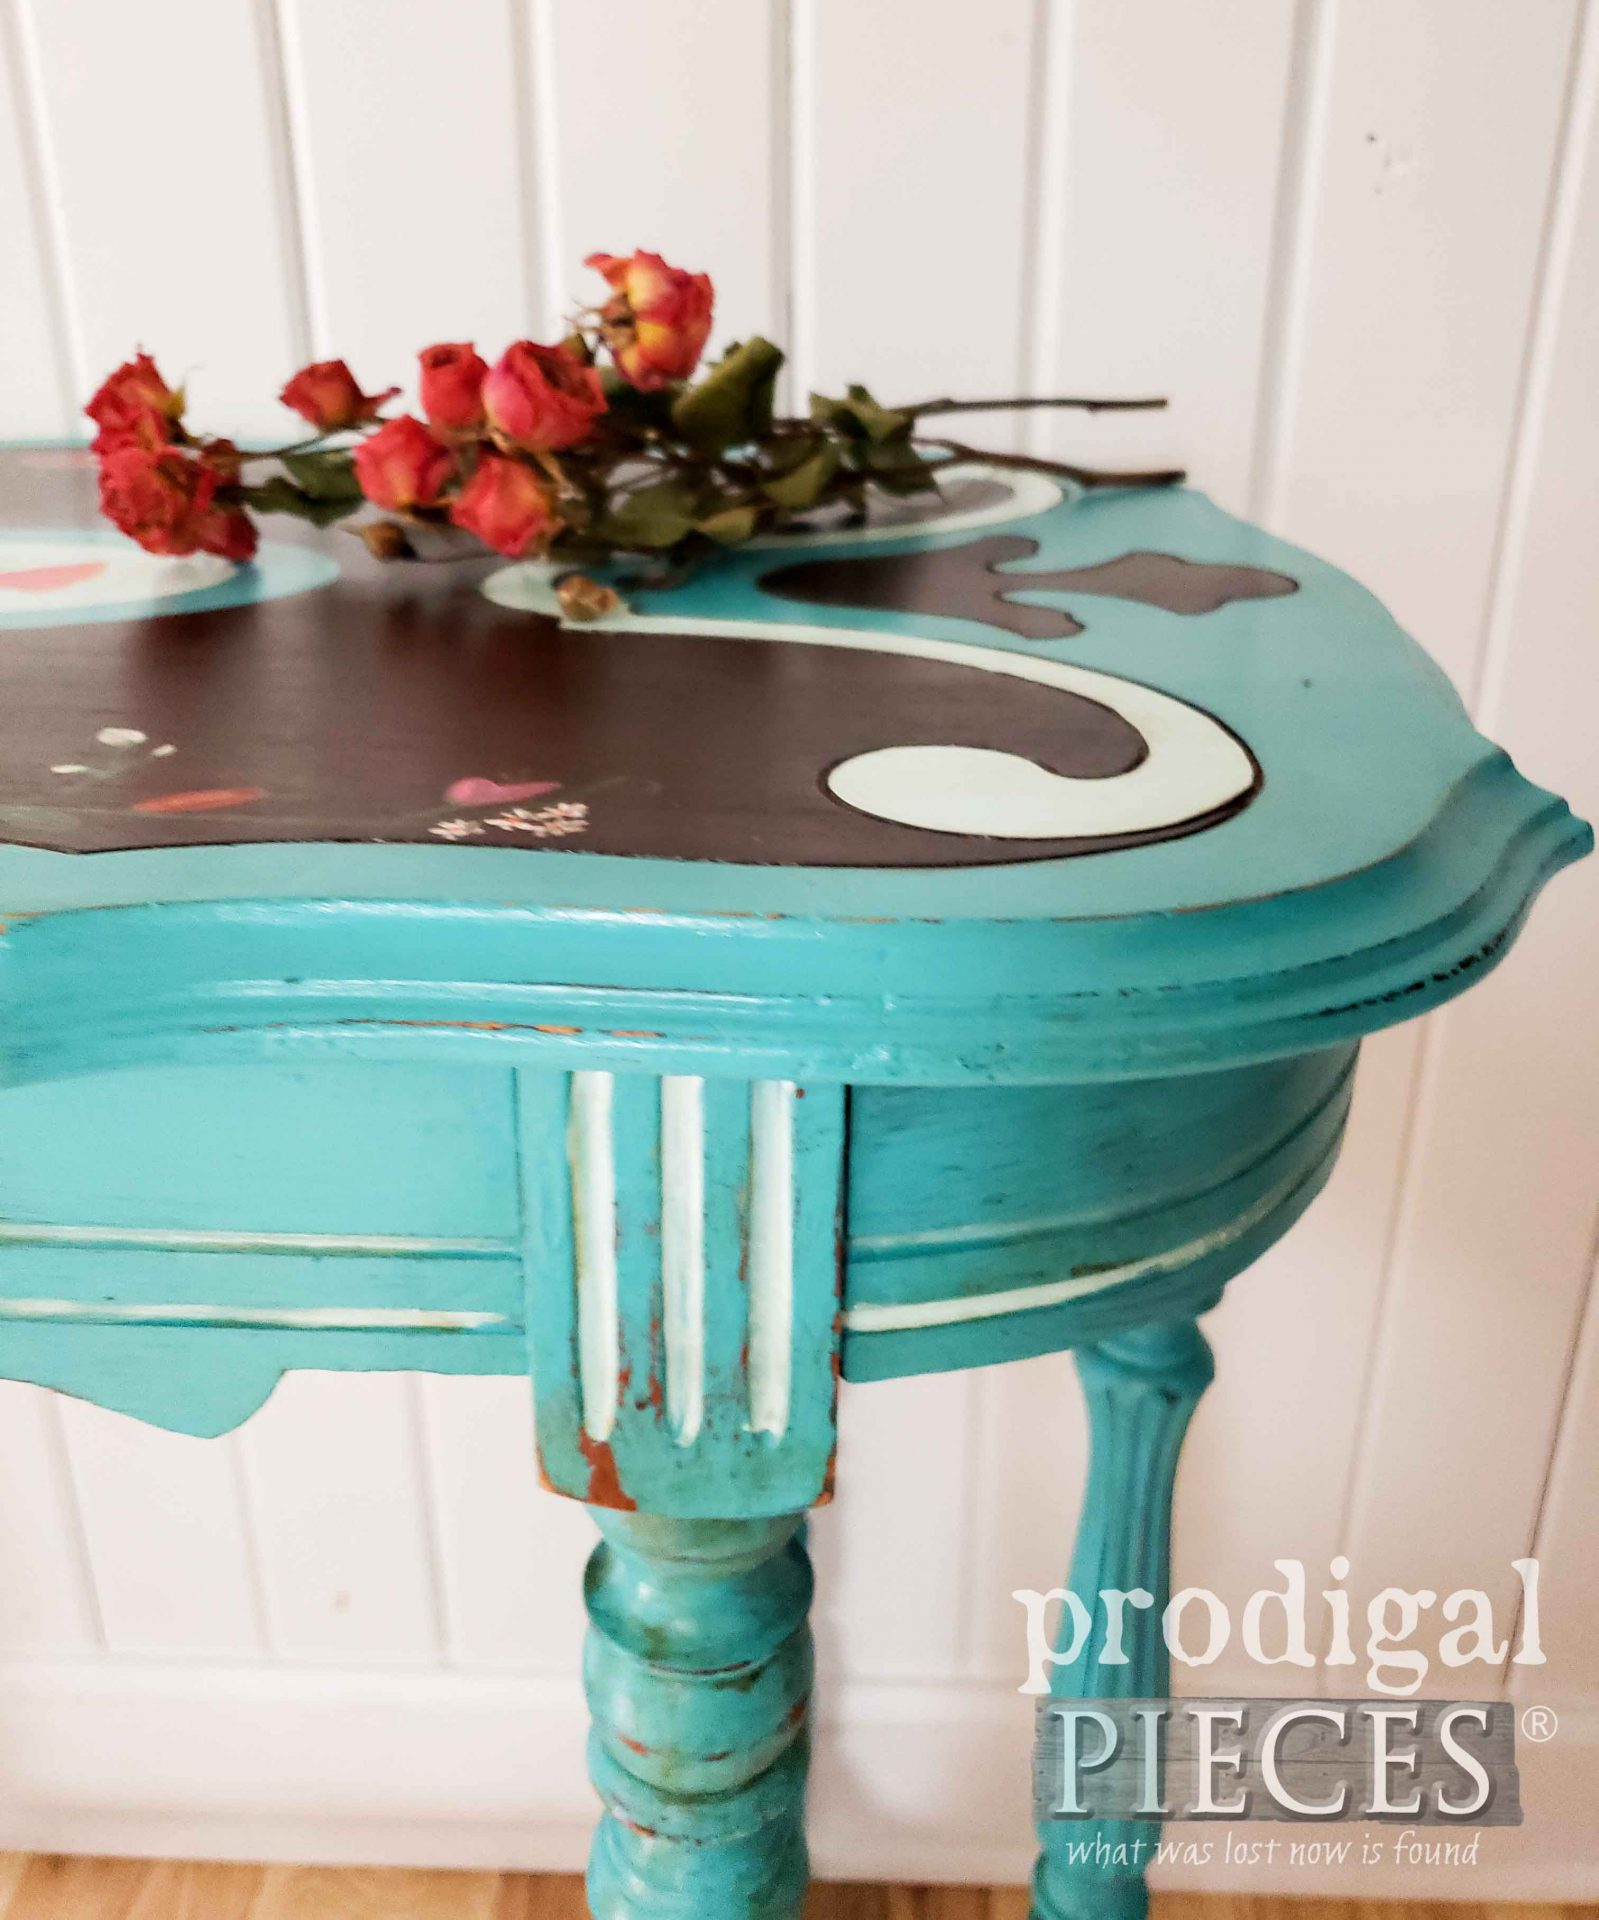 Teal Blue Antique Entry Table by Larissa of Prodigal Pieces | prodigalpieces.com #prodigalpieces #furniture #antique #diy #home #homedecor